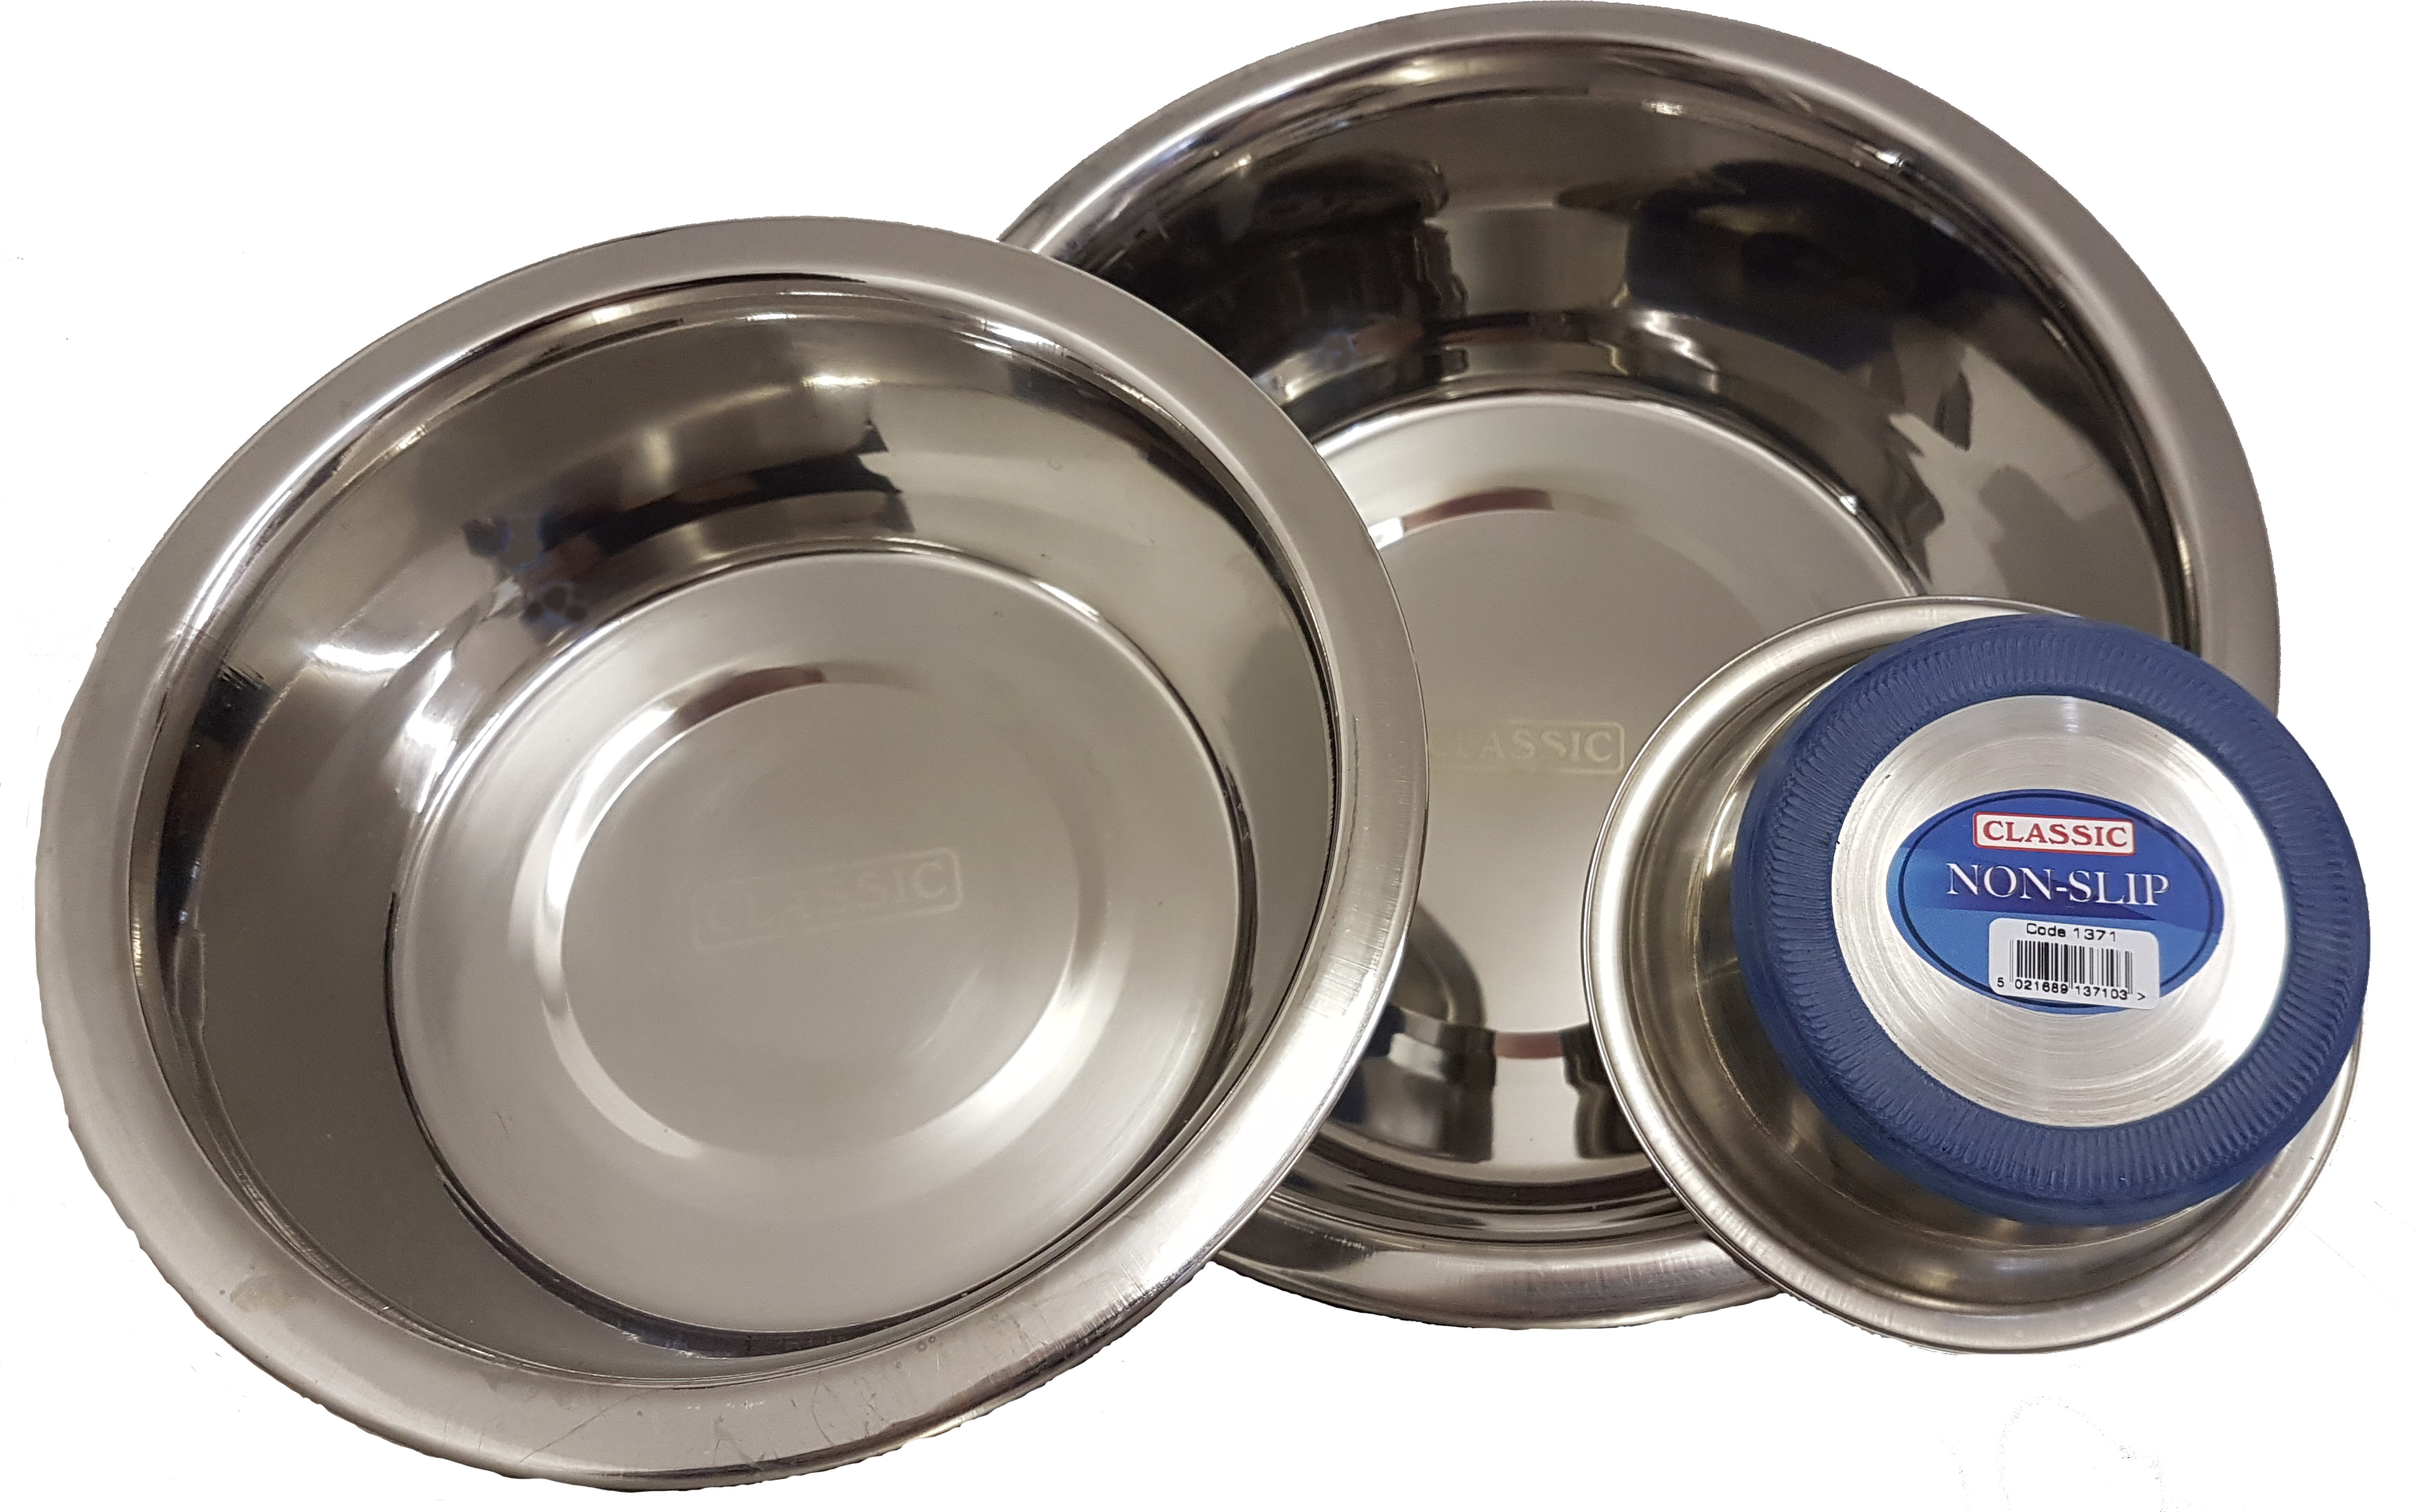 Classic Stainless Steel Bowl 280mm